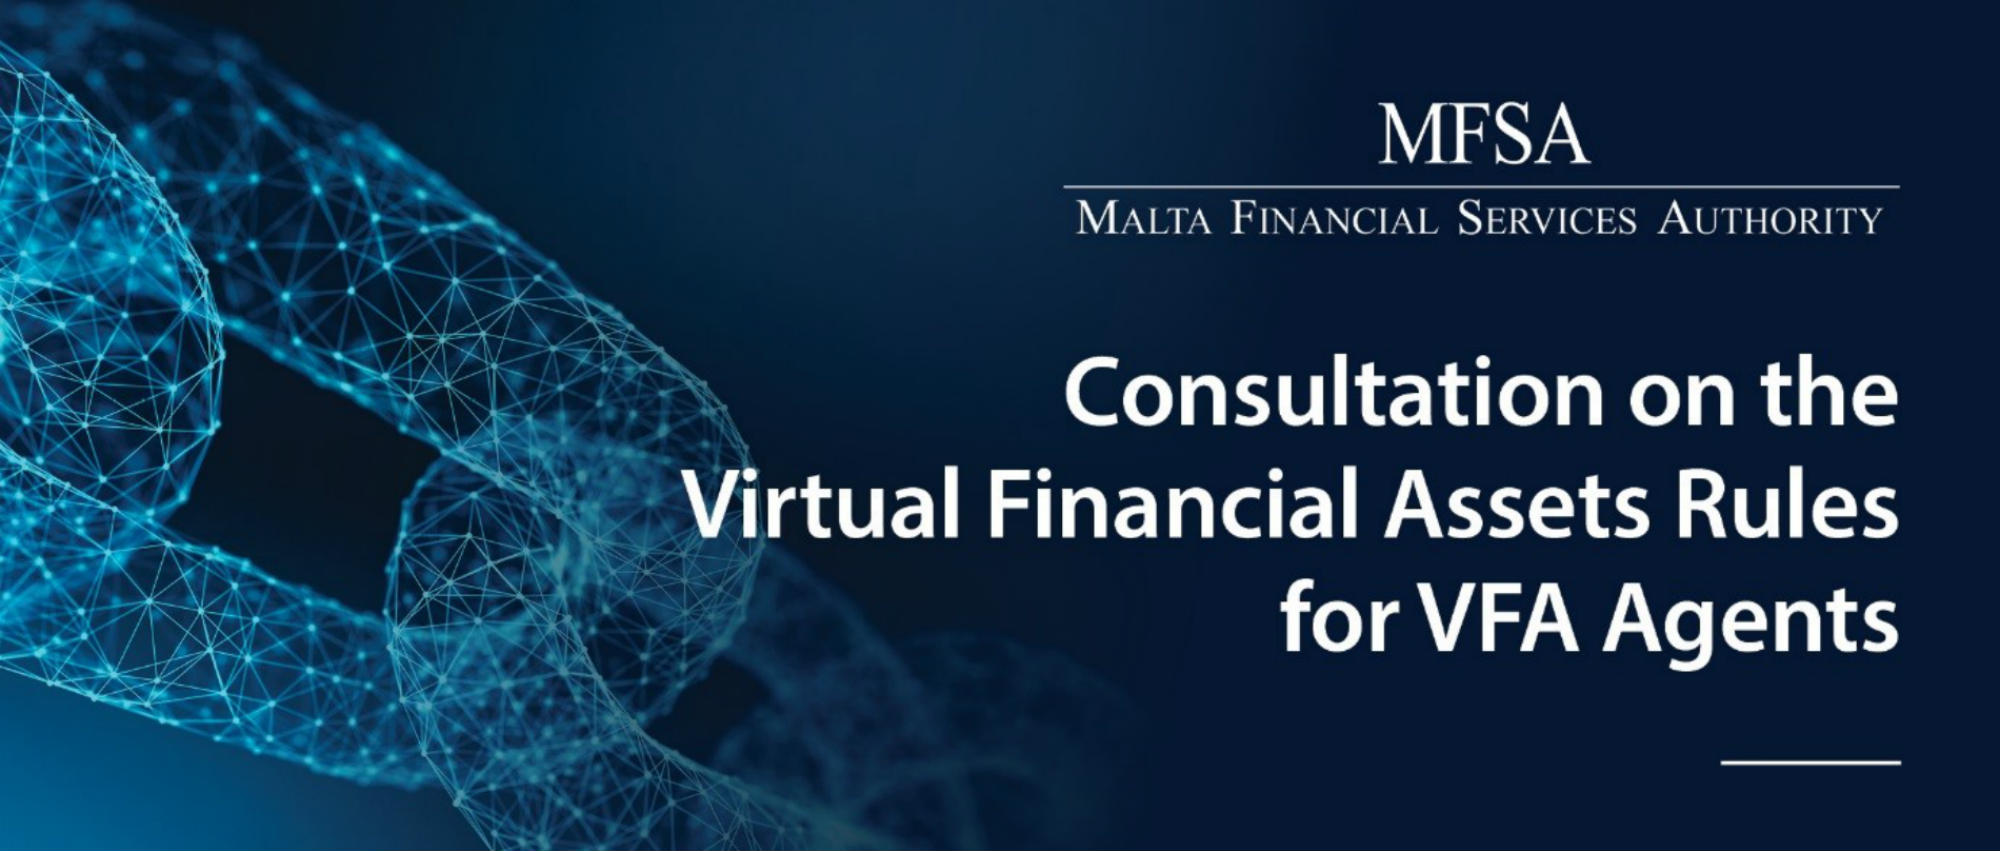 MFSA published a Circular to the VFA Issuers